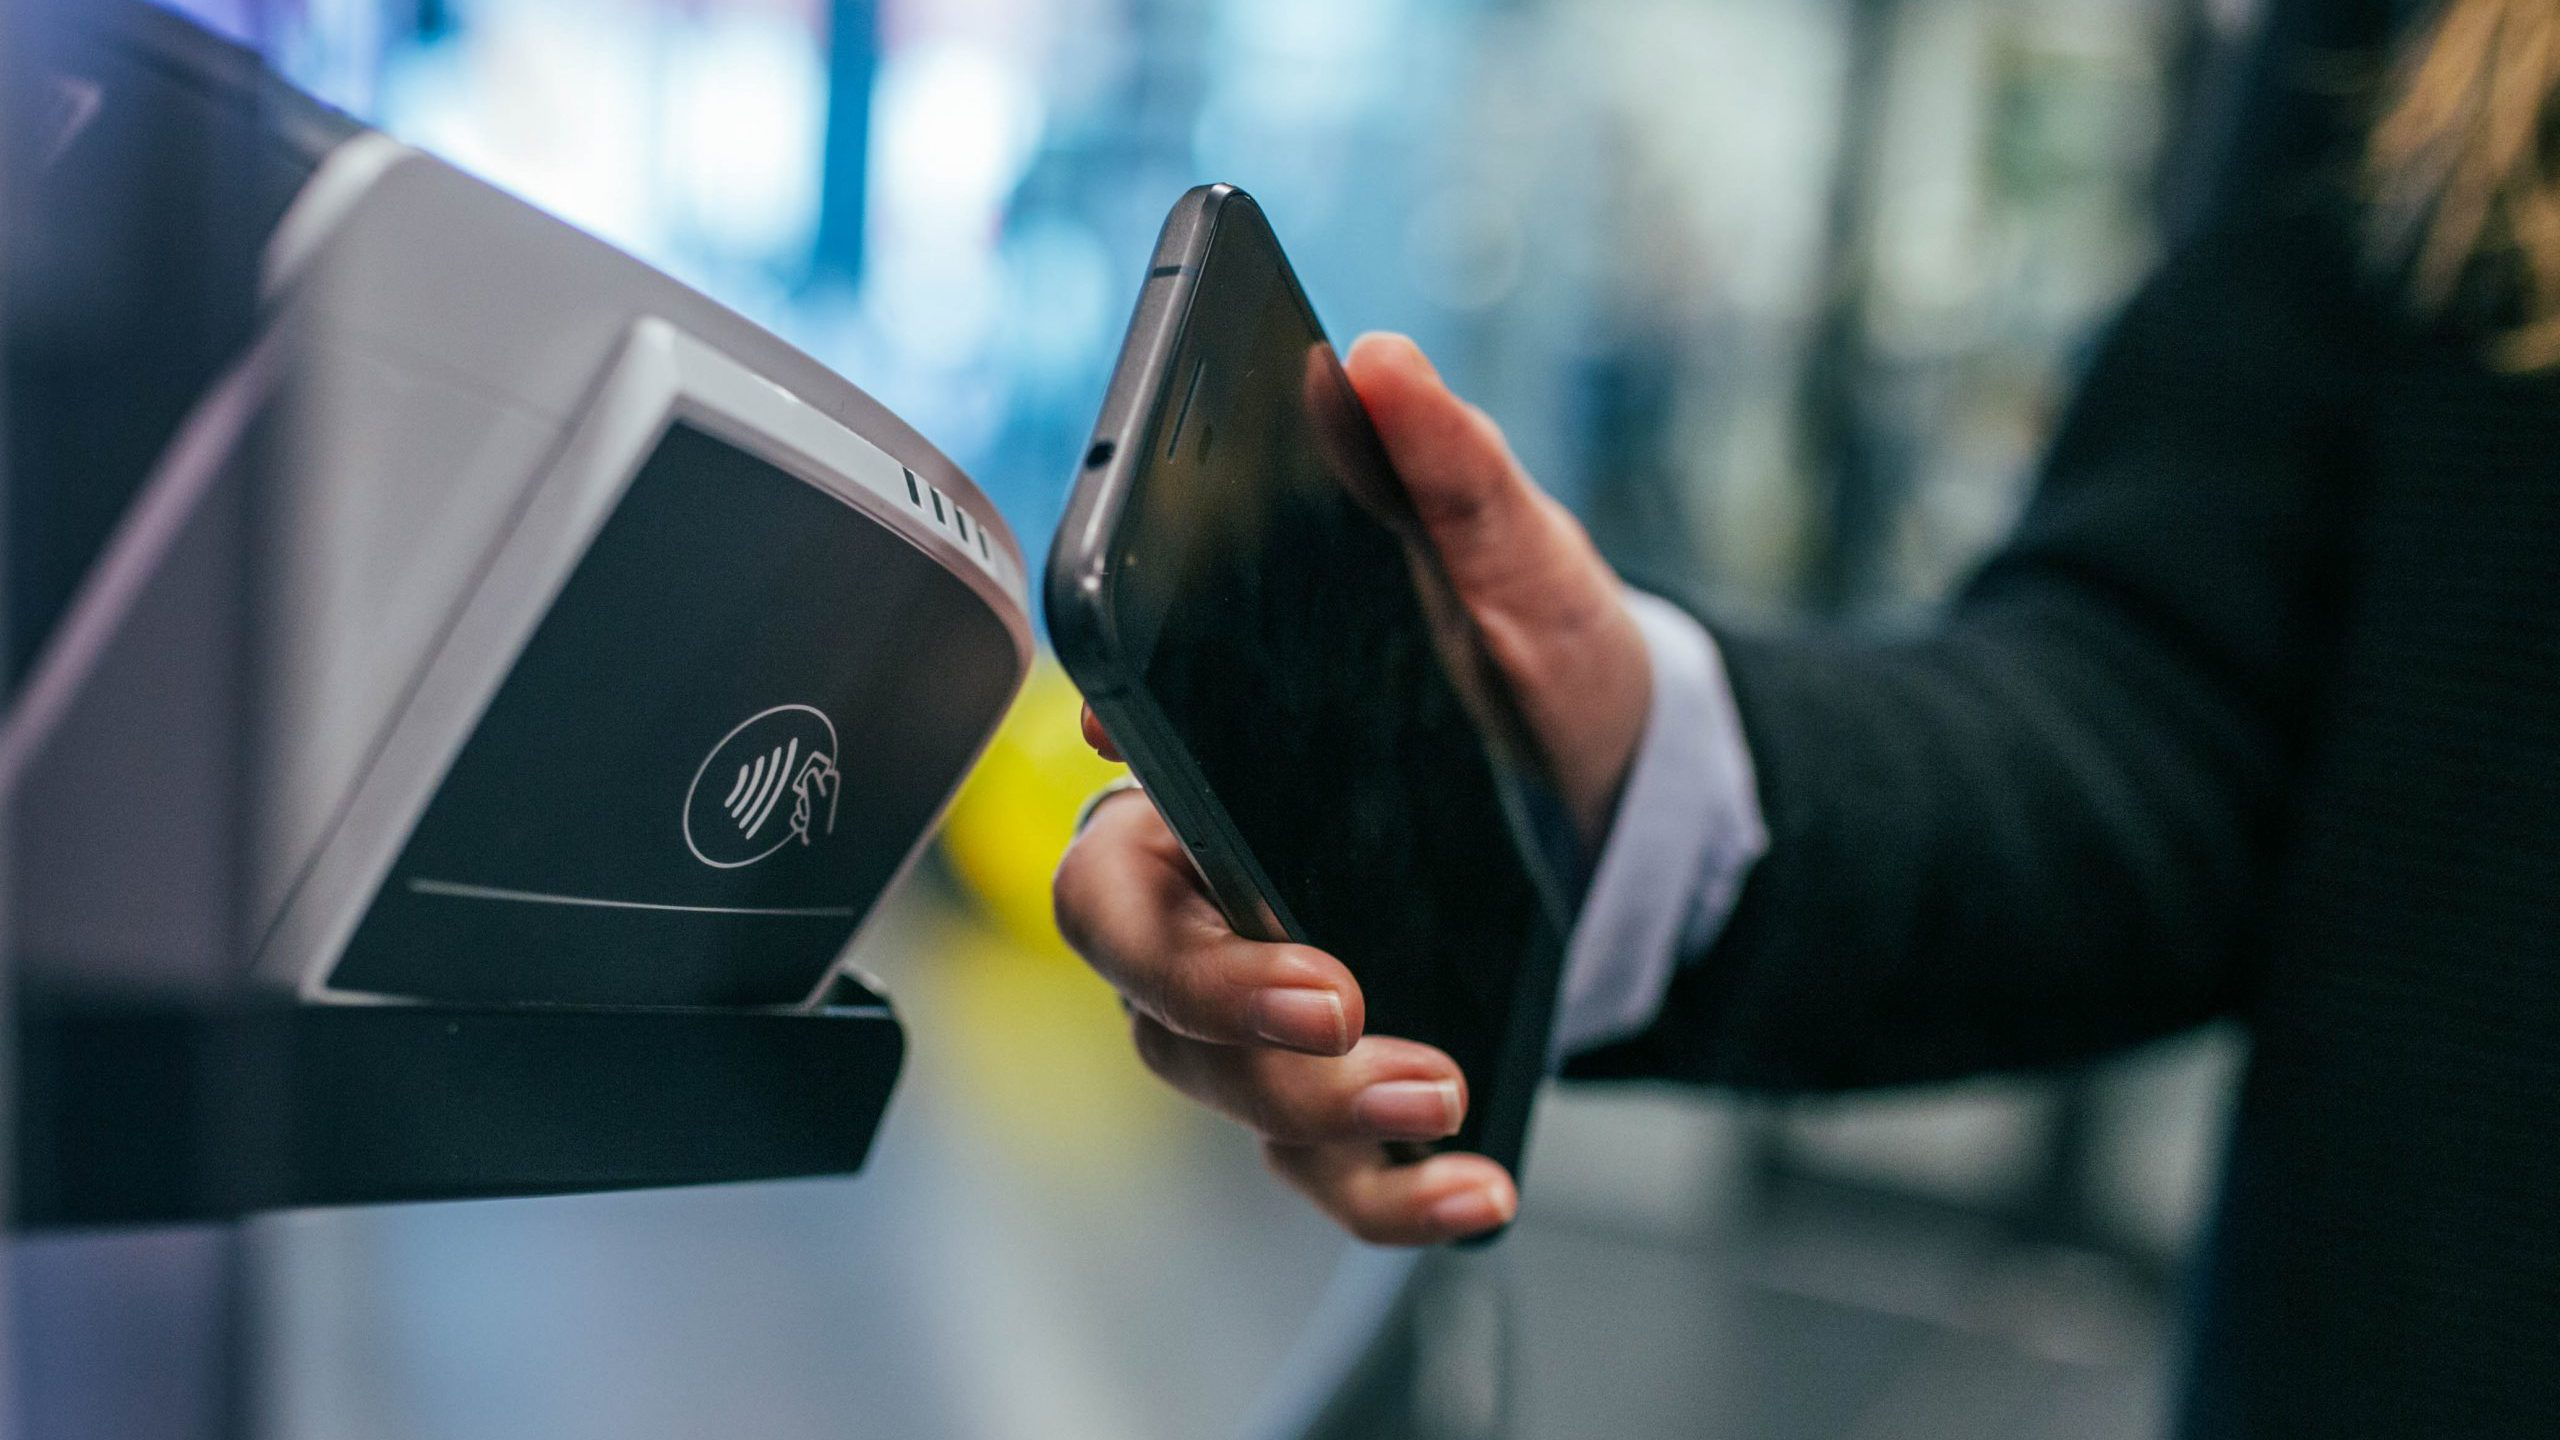 pagos-contactless-paycomet